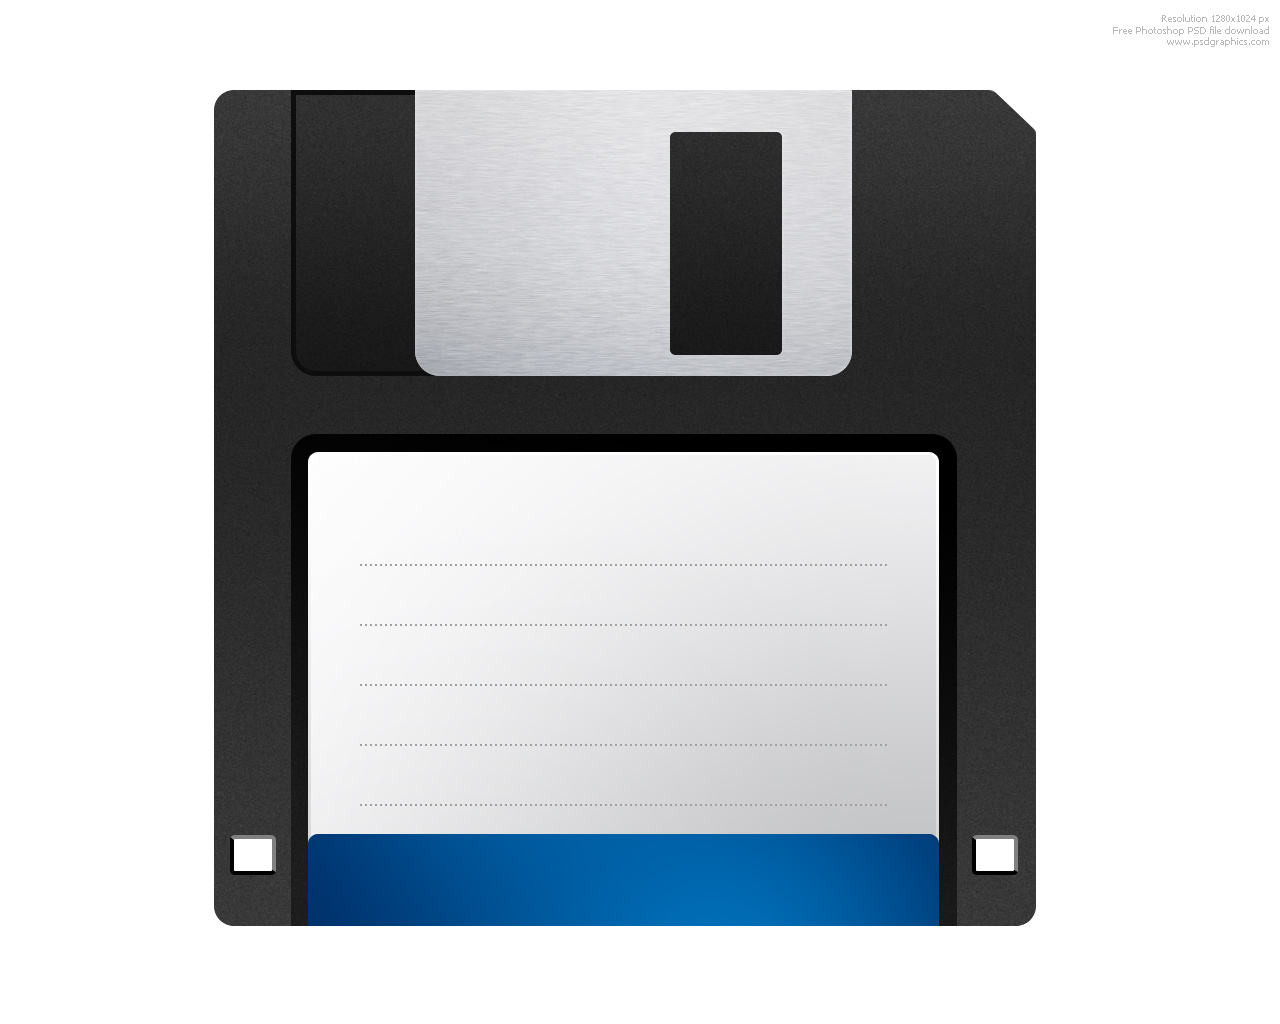 11 Computer Disk Icon Images